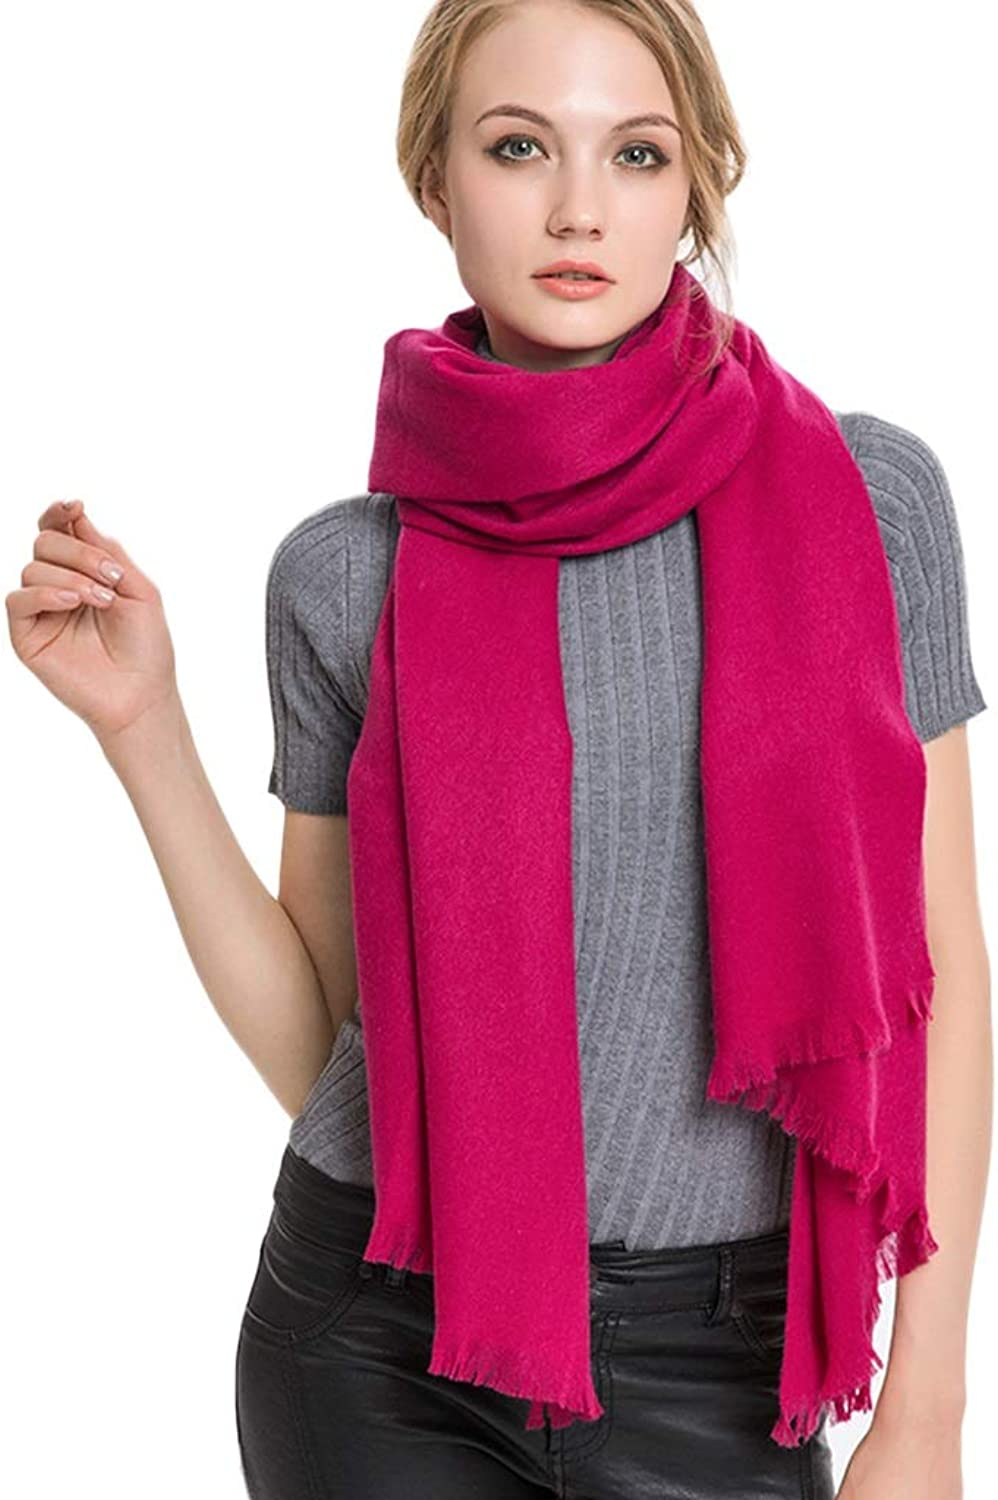 Cold Weather Scarves Women's Scarves Red Ladies Scarf Ladies Wrap Shawl Soft Warm Scarf Autumn and Winter Thin Scarf Students Long Paragraph Wild Shawl Wraps (color   pink Red, Size   200  60cm)